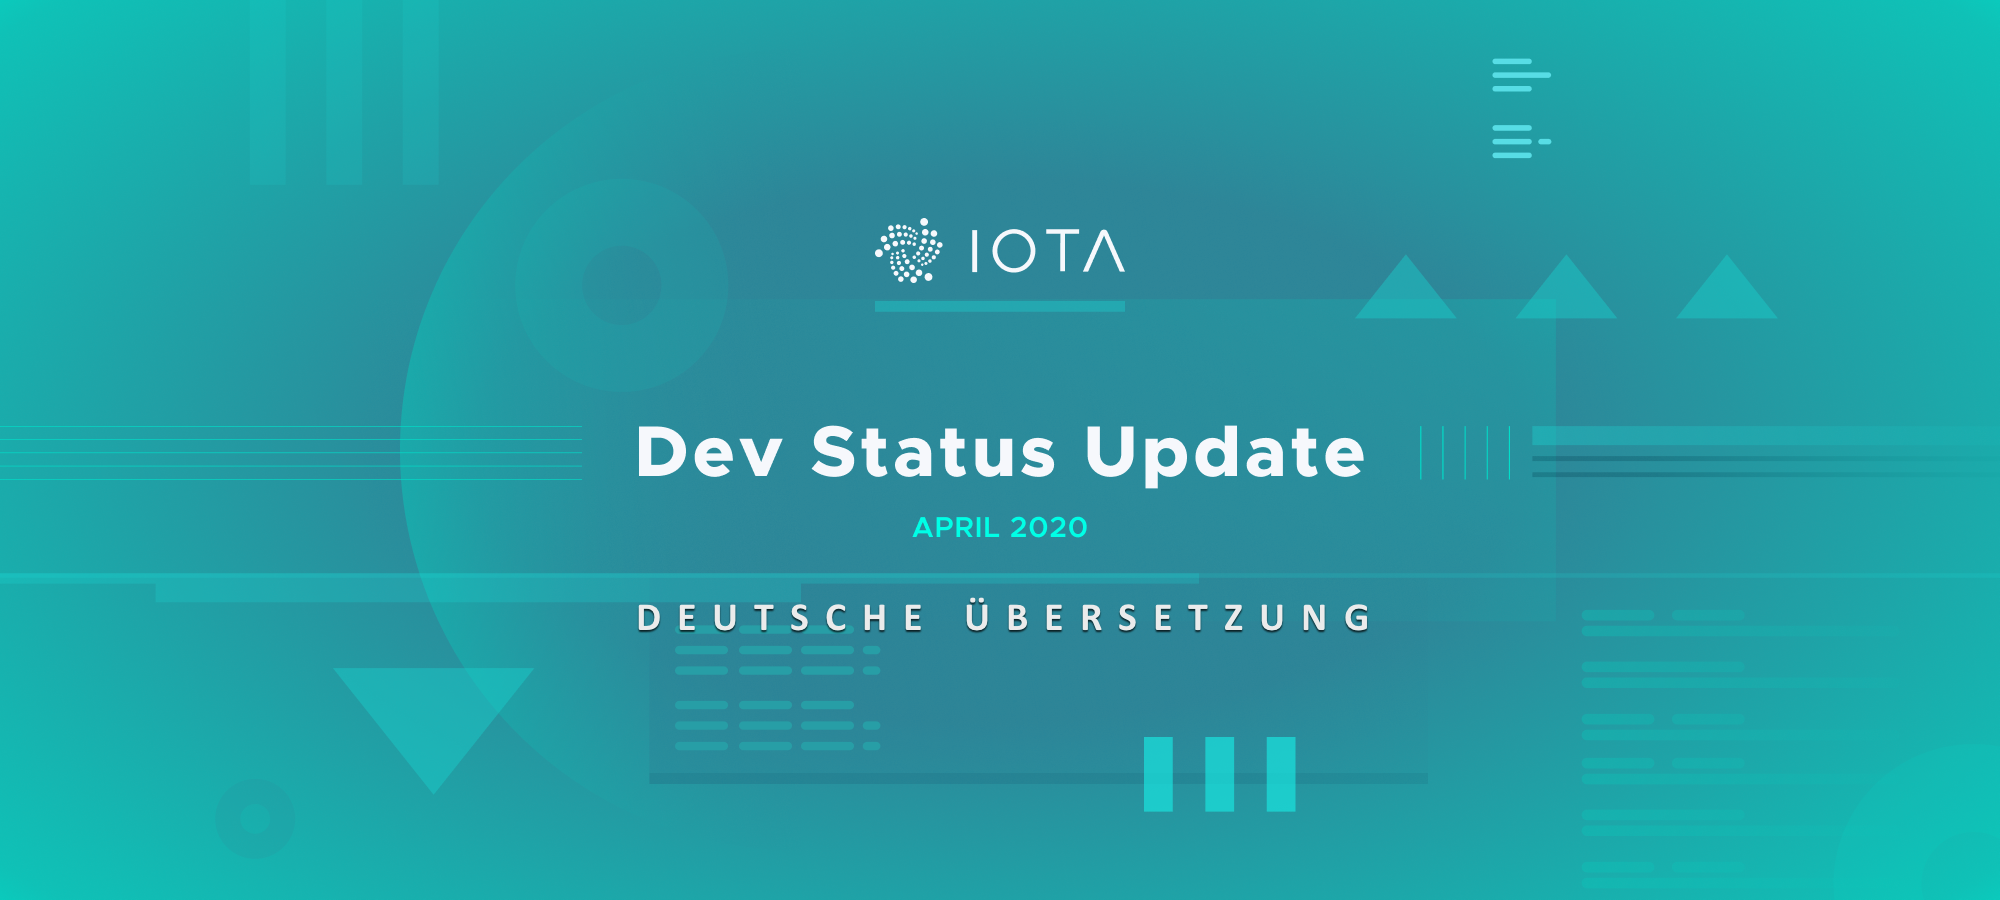 development status update iota April 2020 deutsch